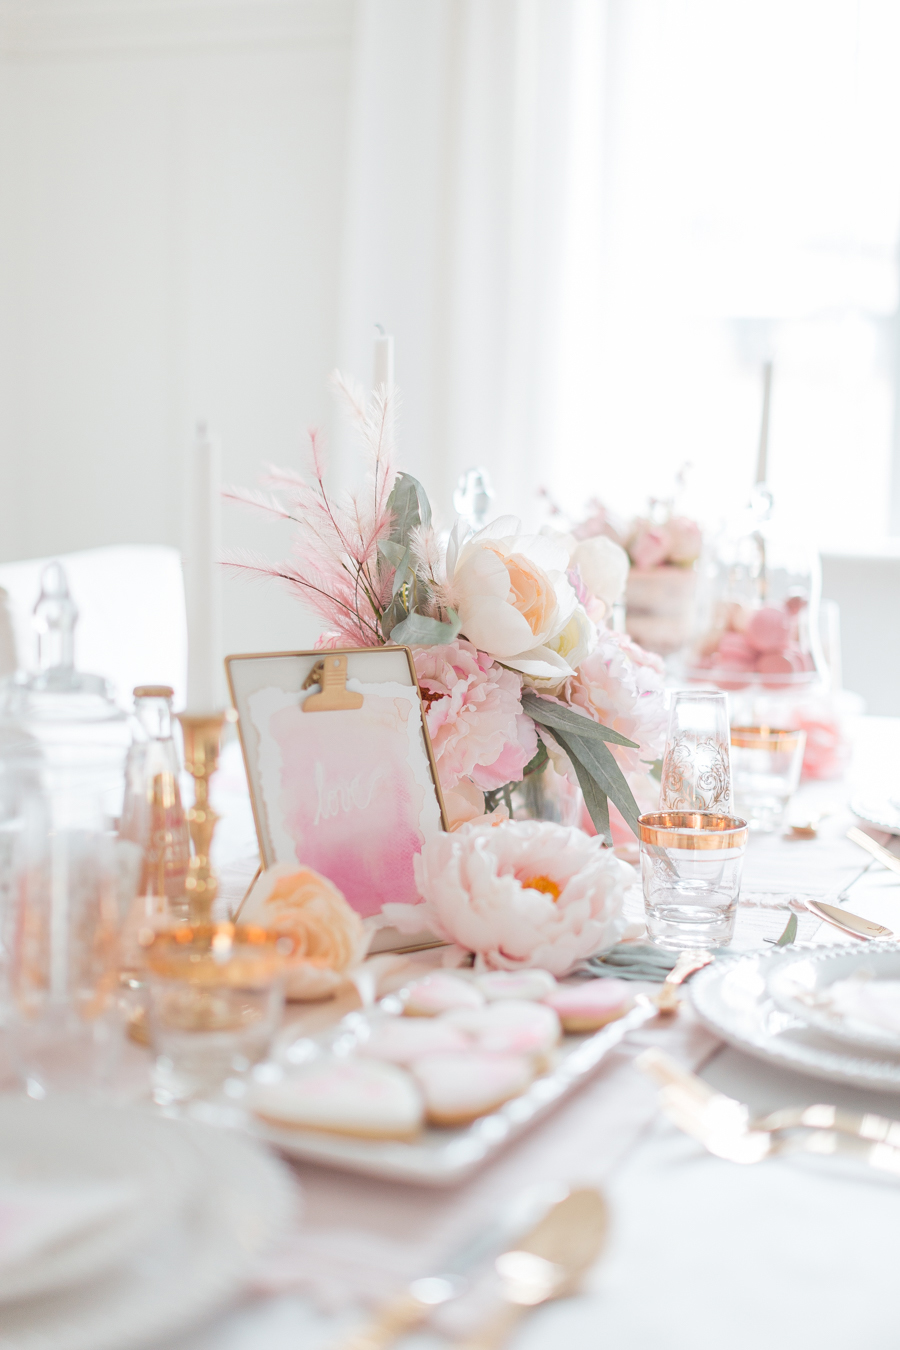 Elegant Valentine's Day Tablescape Ideas | Randi Garrett Designs